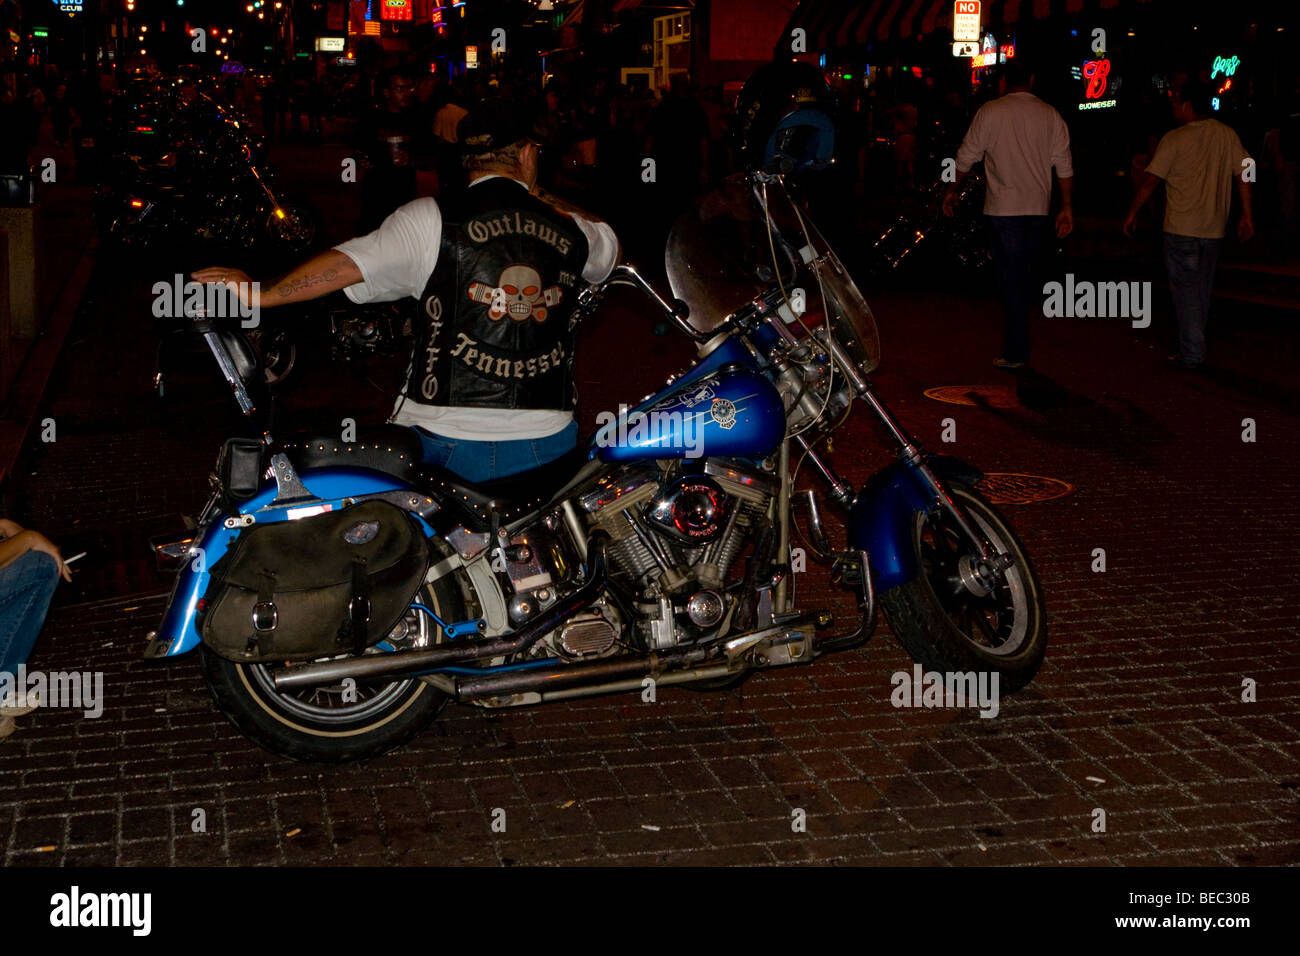 Outlaws Motorcycle Club Stock Photos & Outlaws Motorcycle